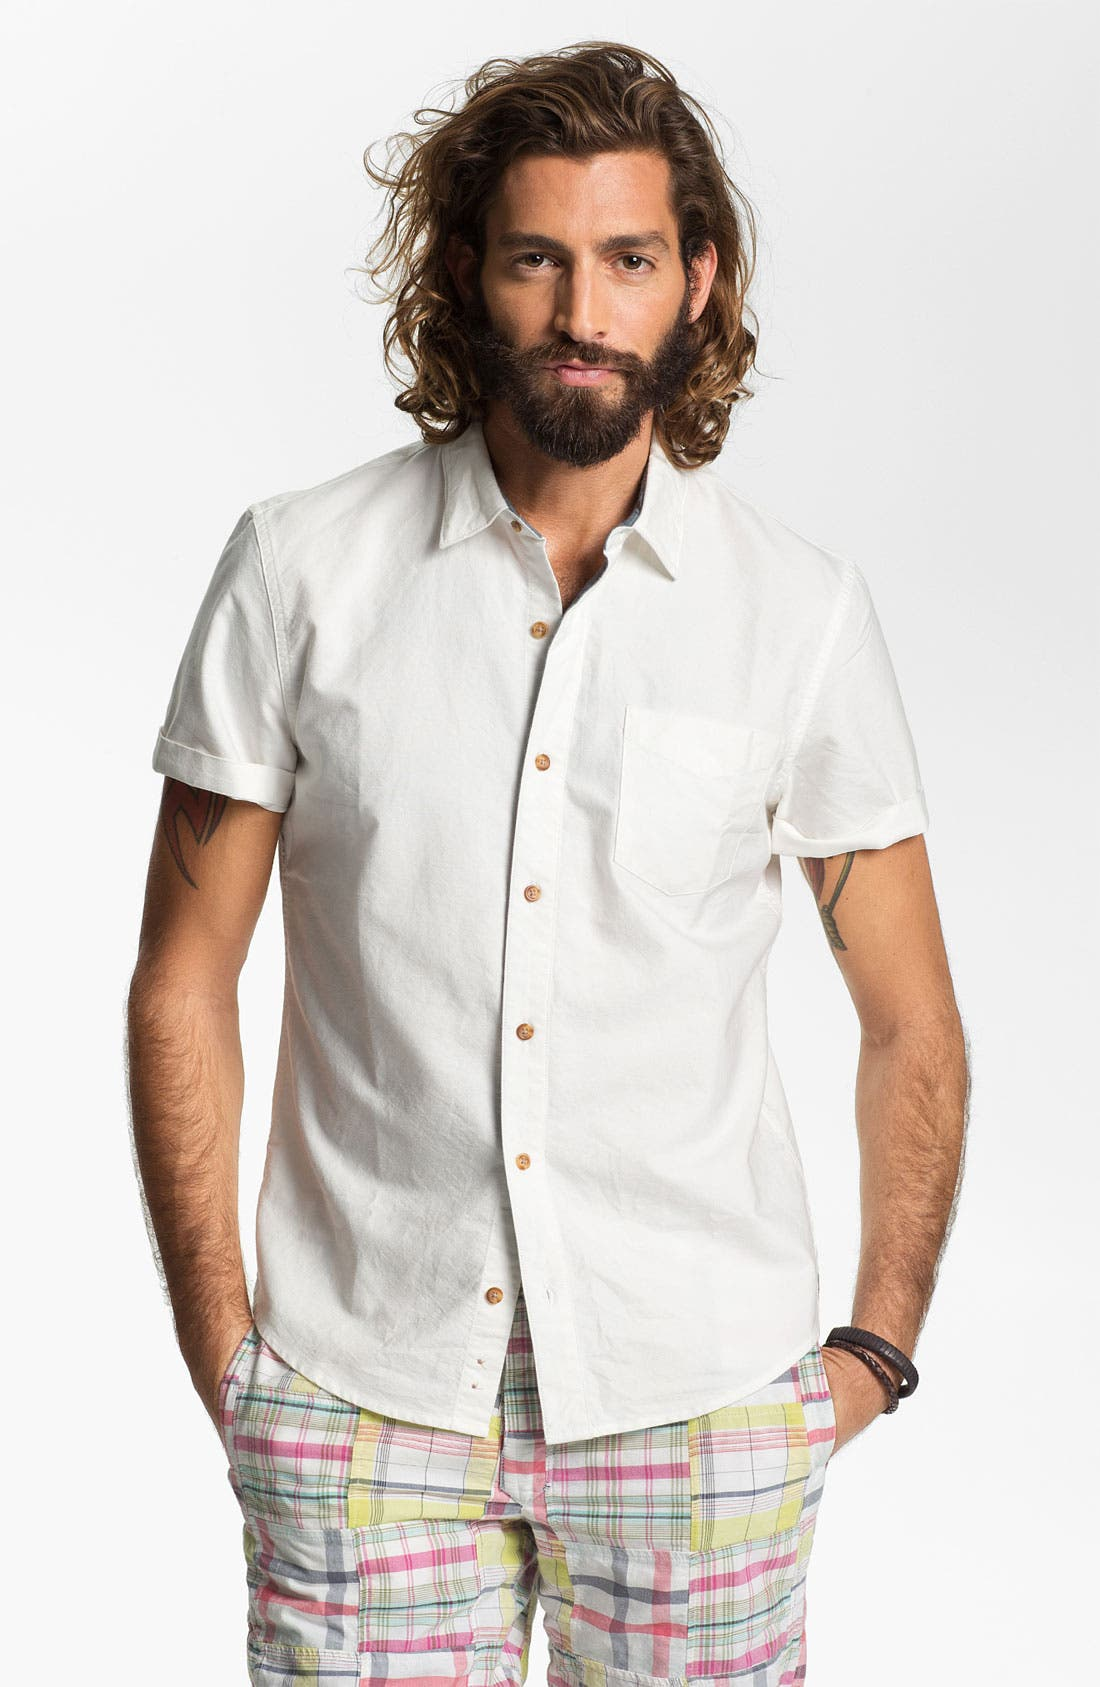 Main Image - 1901 Trim Fit Short Sleeve Oxford Sport Shirt